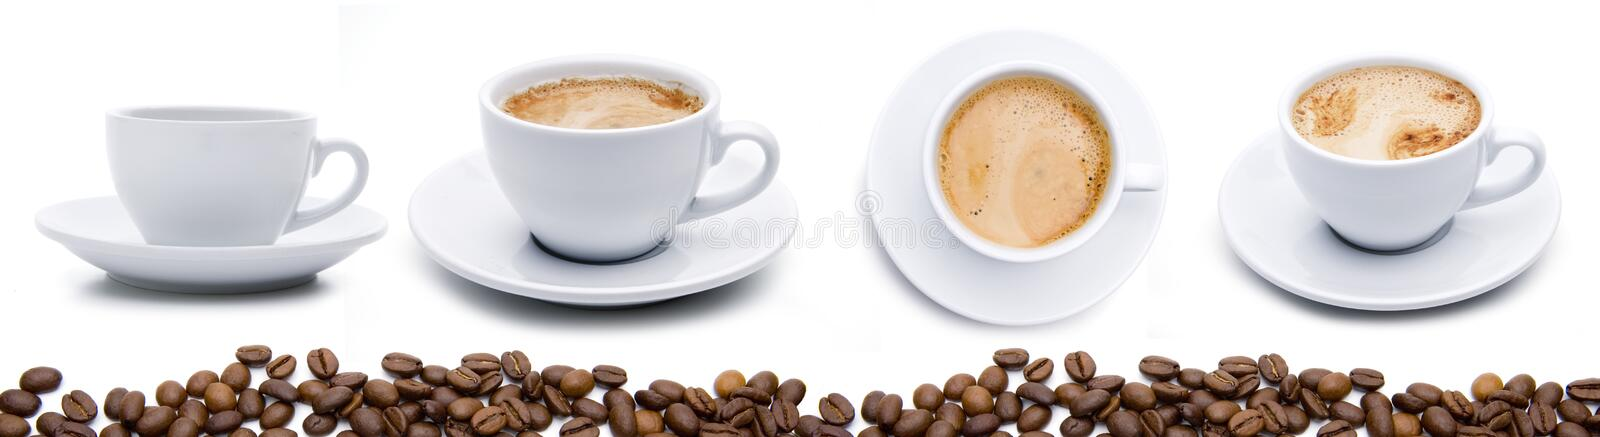 Coffee Cups with Beans stock photos